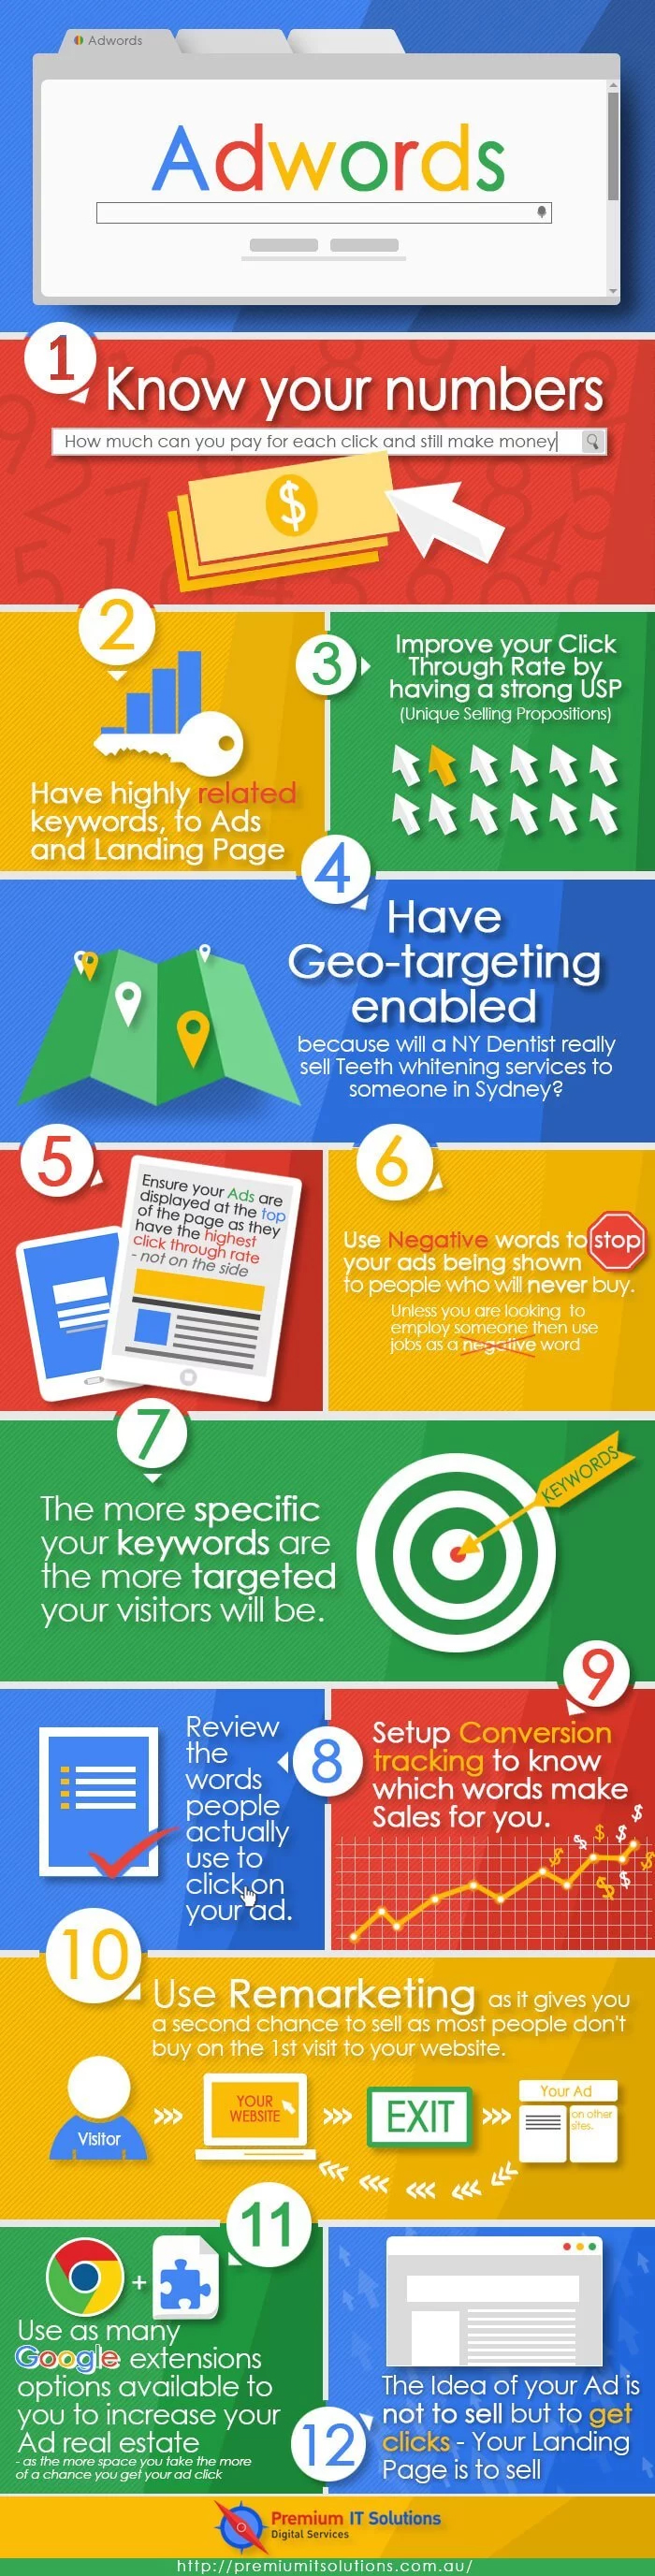 12 Steps to Becoming a Google AdWords Expert [Infographic]